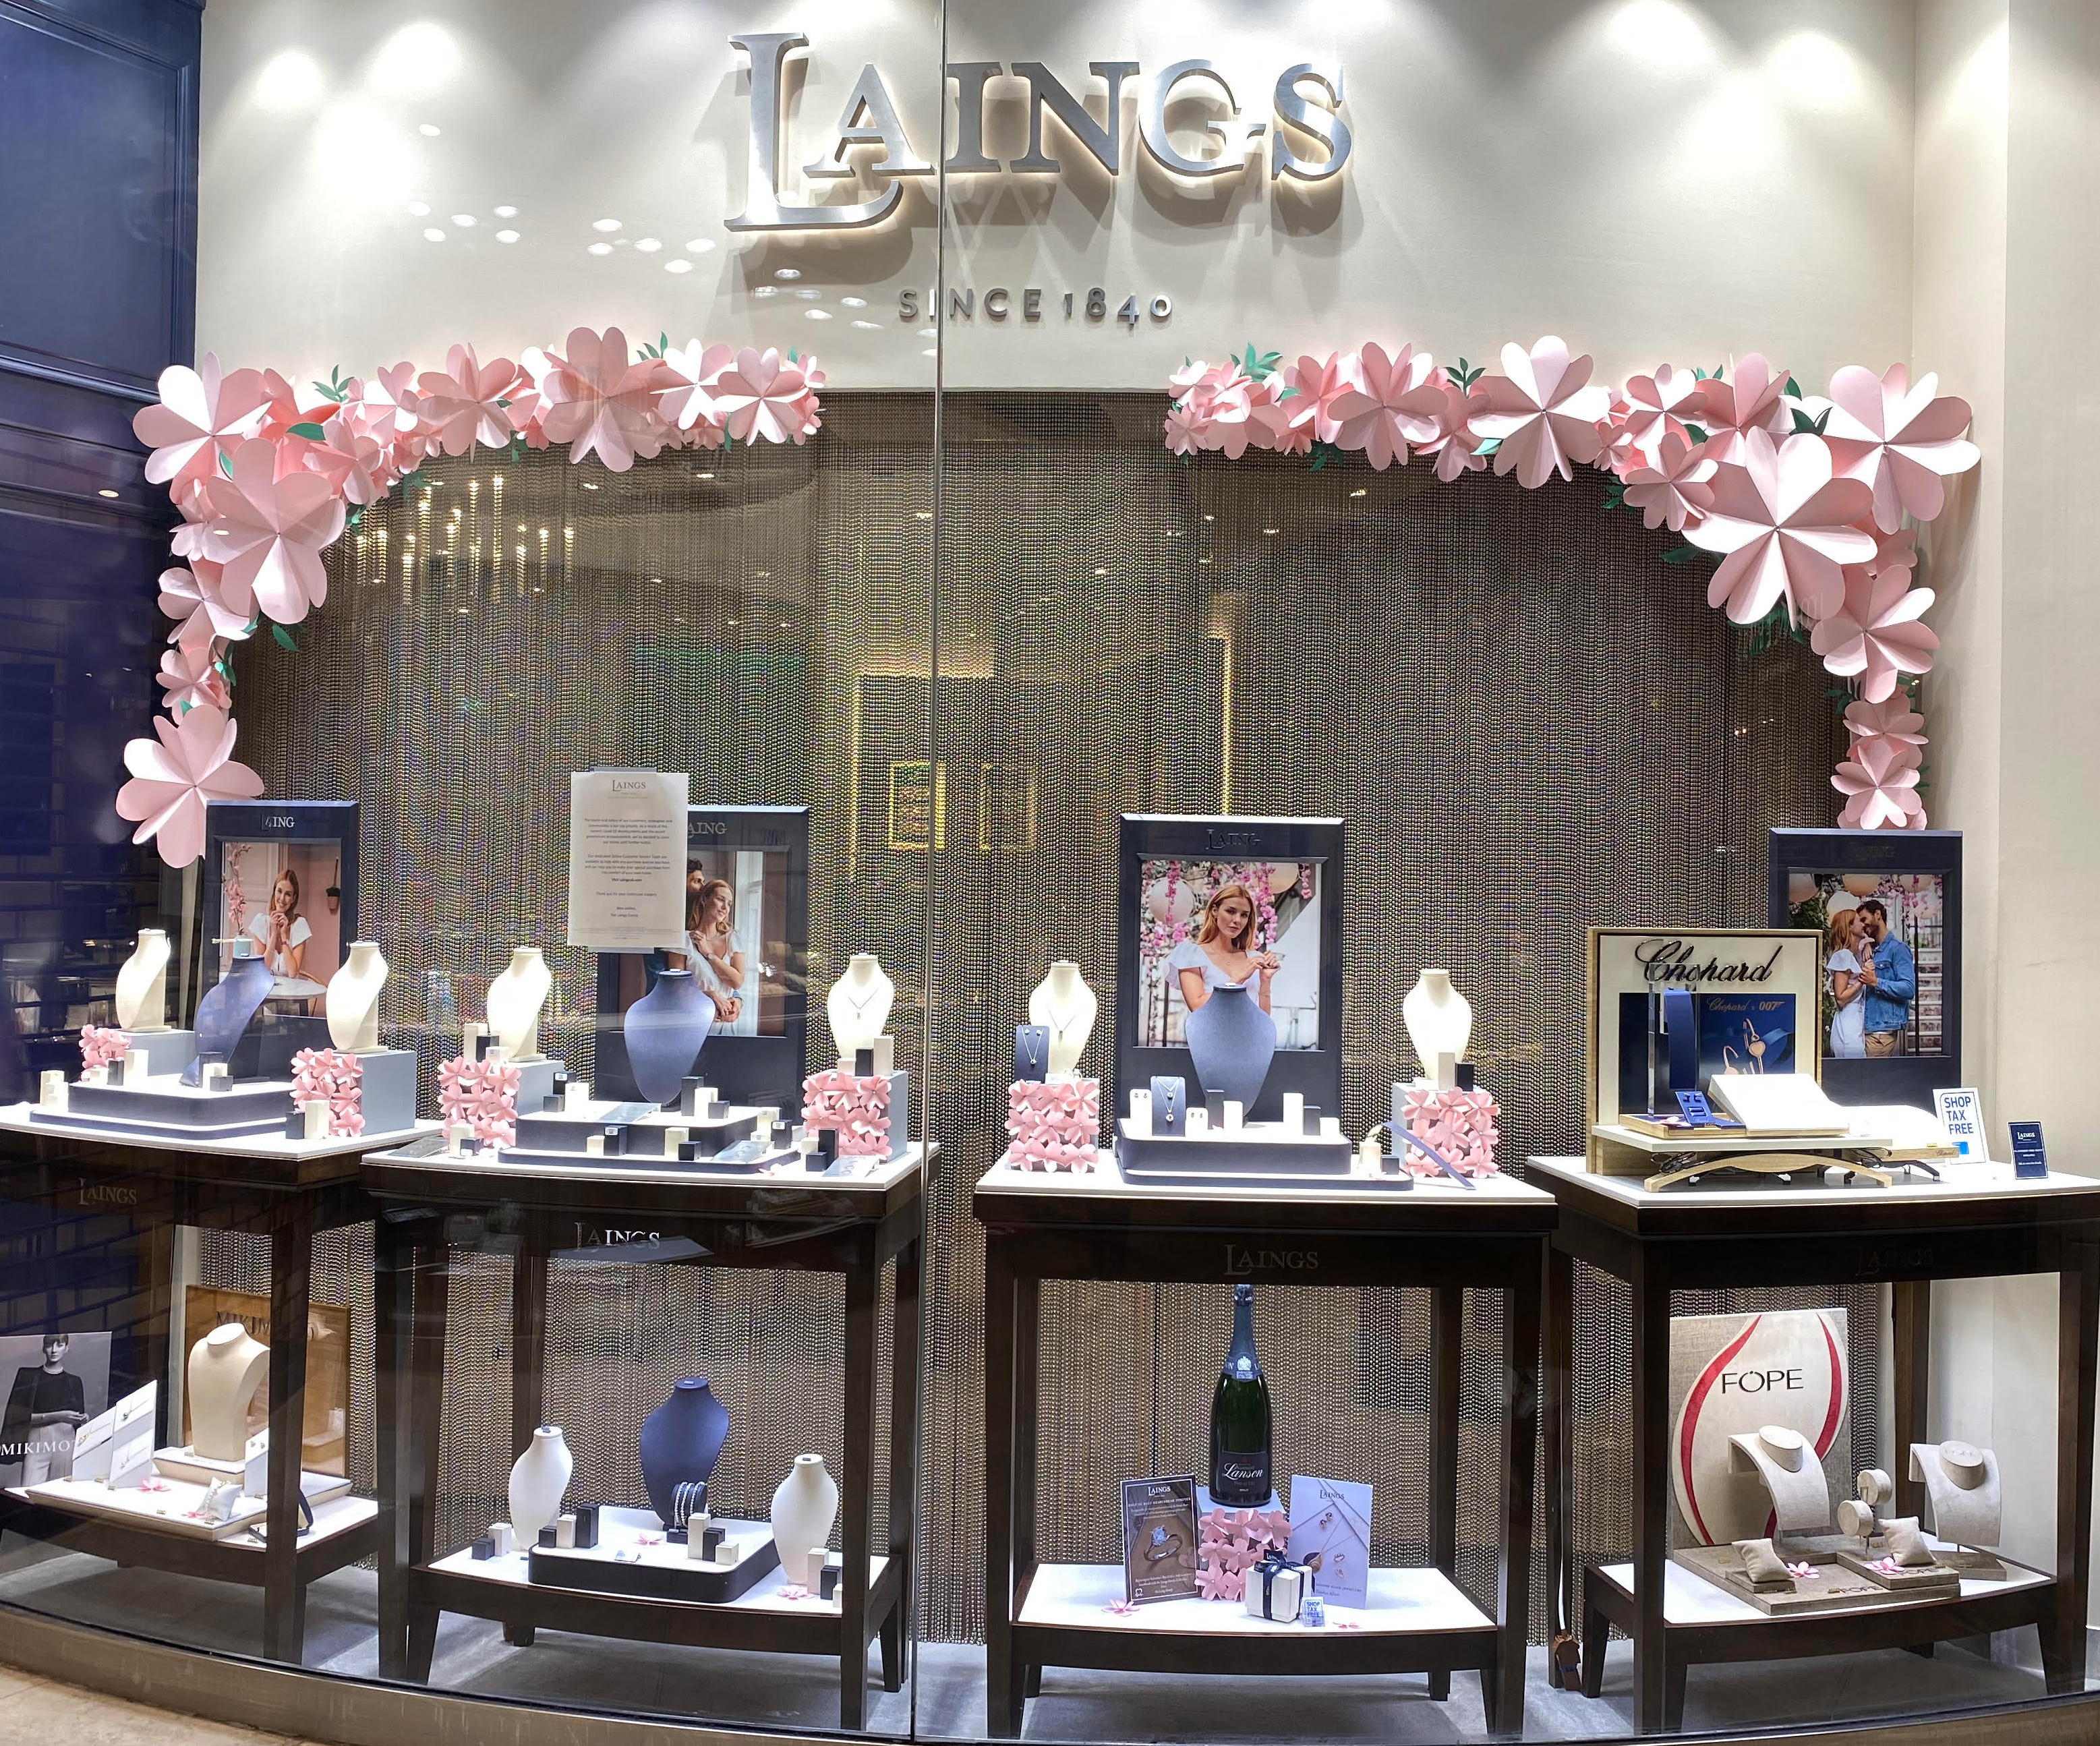 Jewellery visual merchandising and store display examples